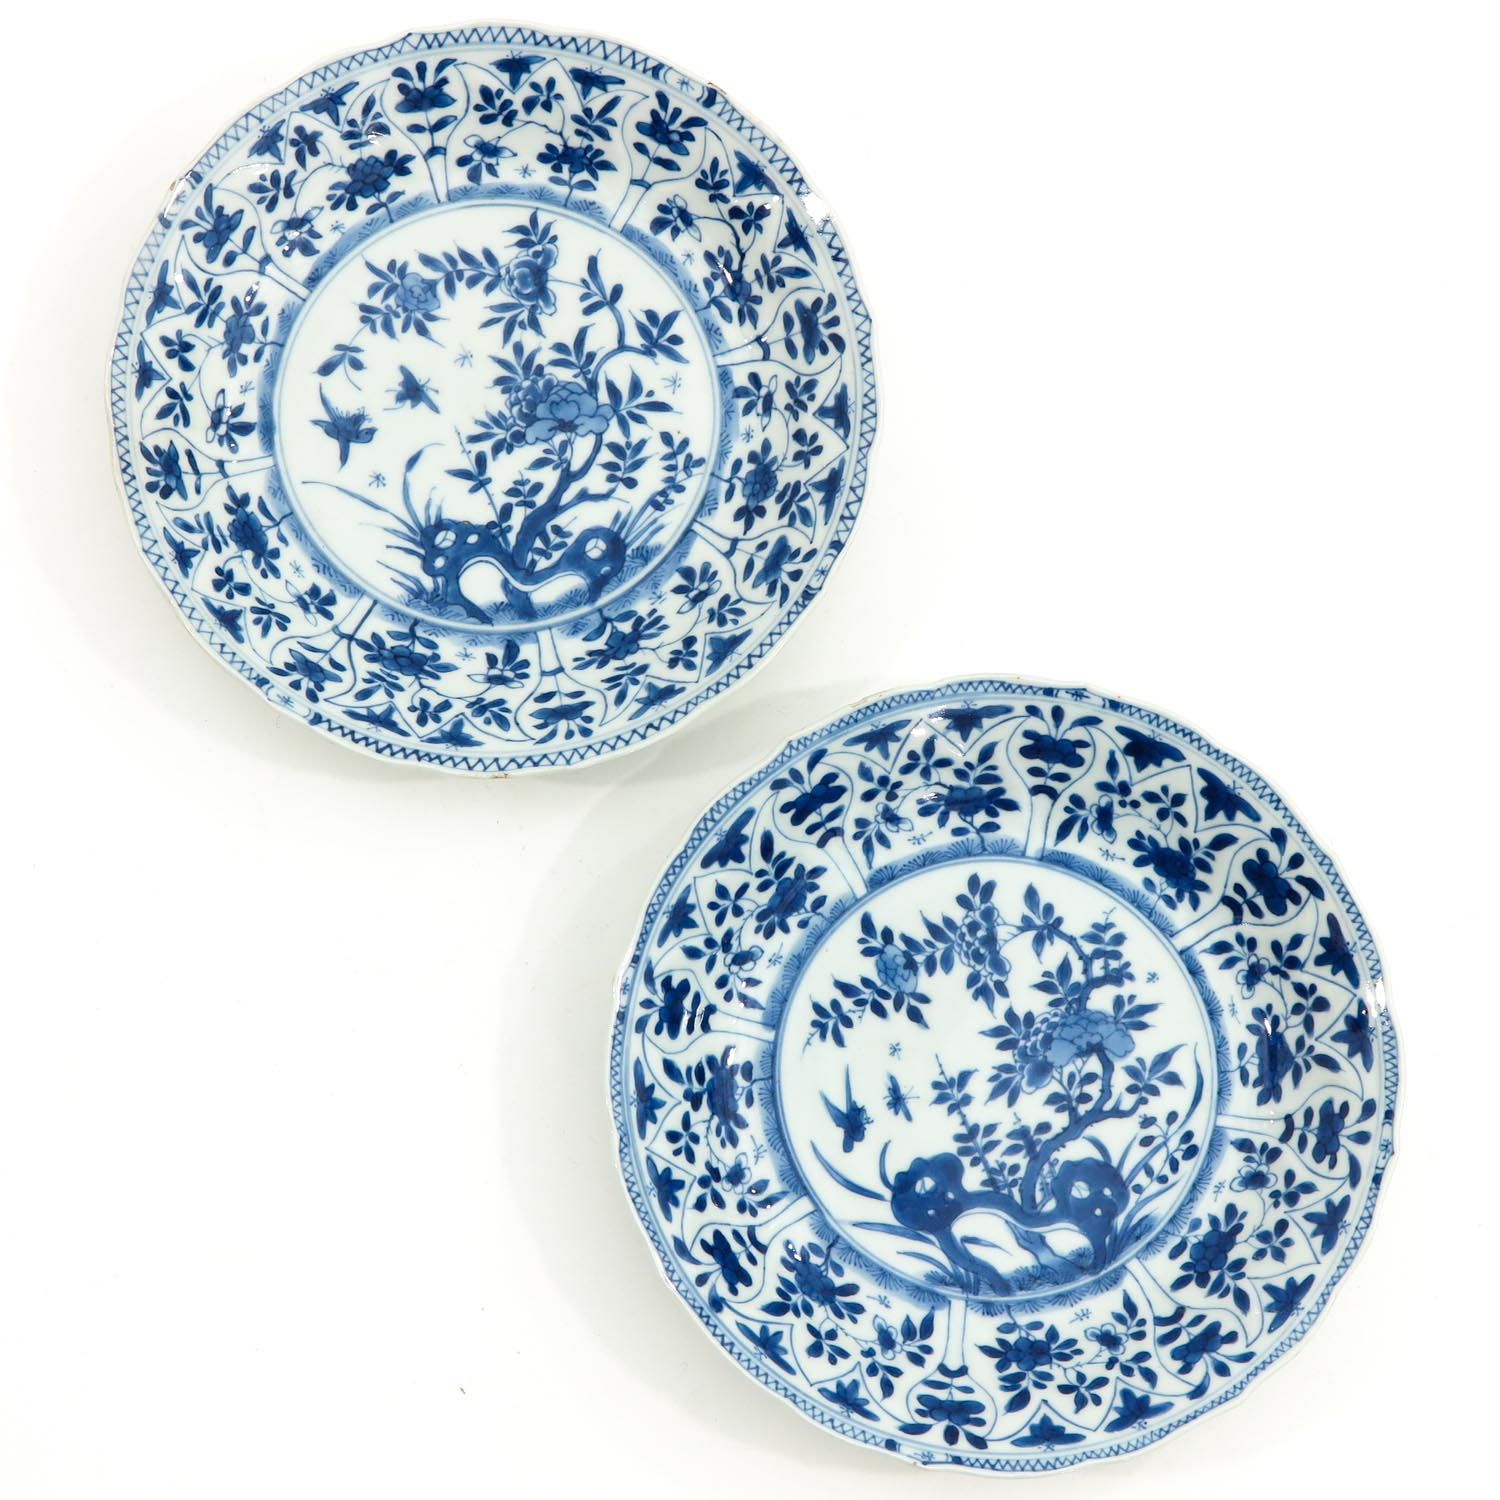 A Collection of 6 Blue and White Plates - Image 7 of 10